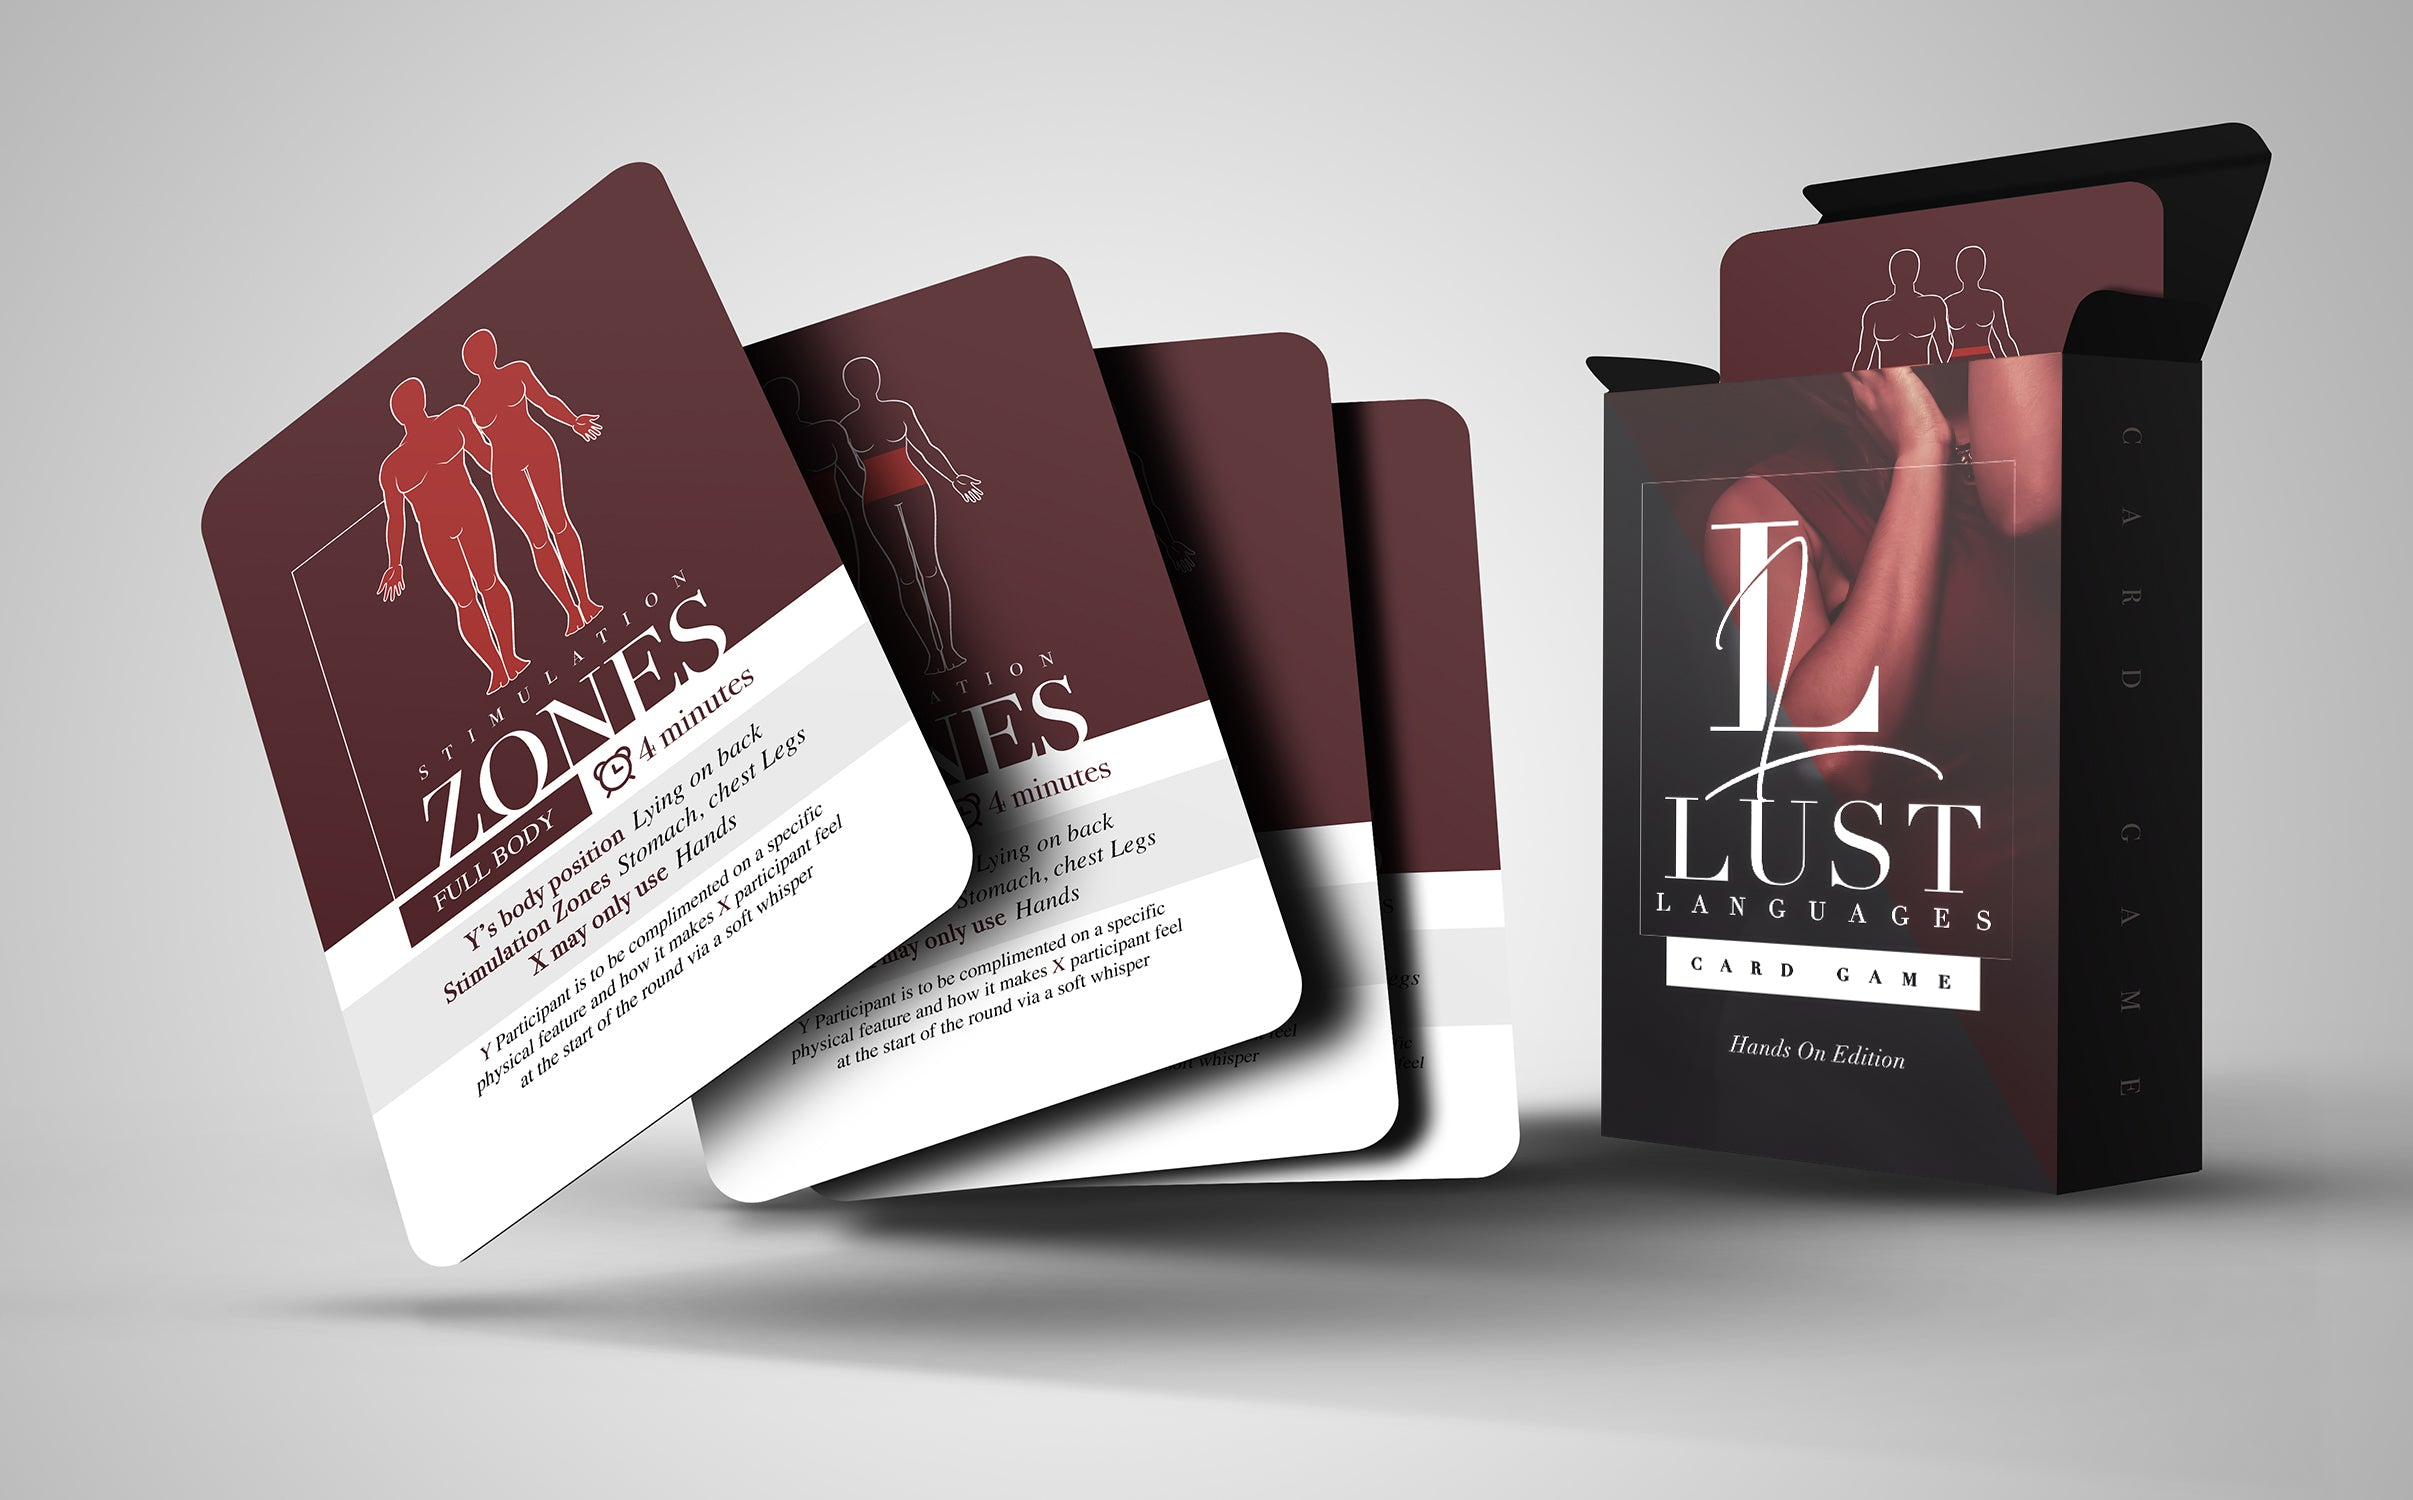 //cdn.shopify.com/s/files/1/1816/2629/files/lust_card_new_look2.jpg?v=1591626297